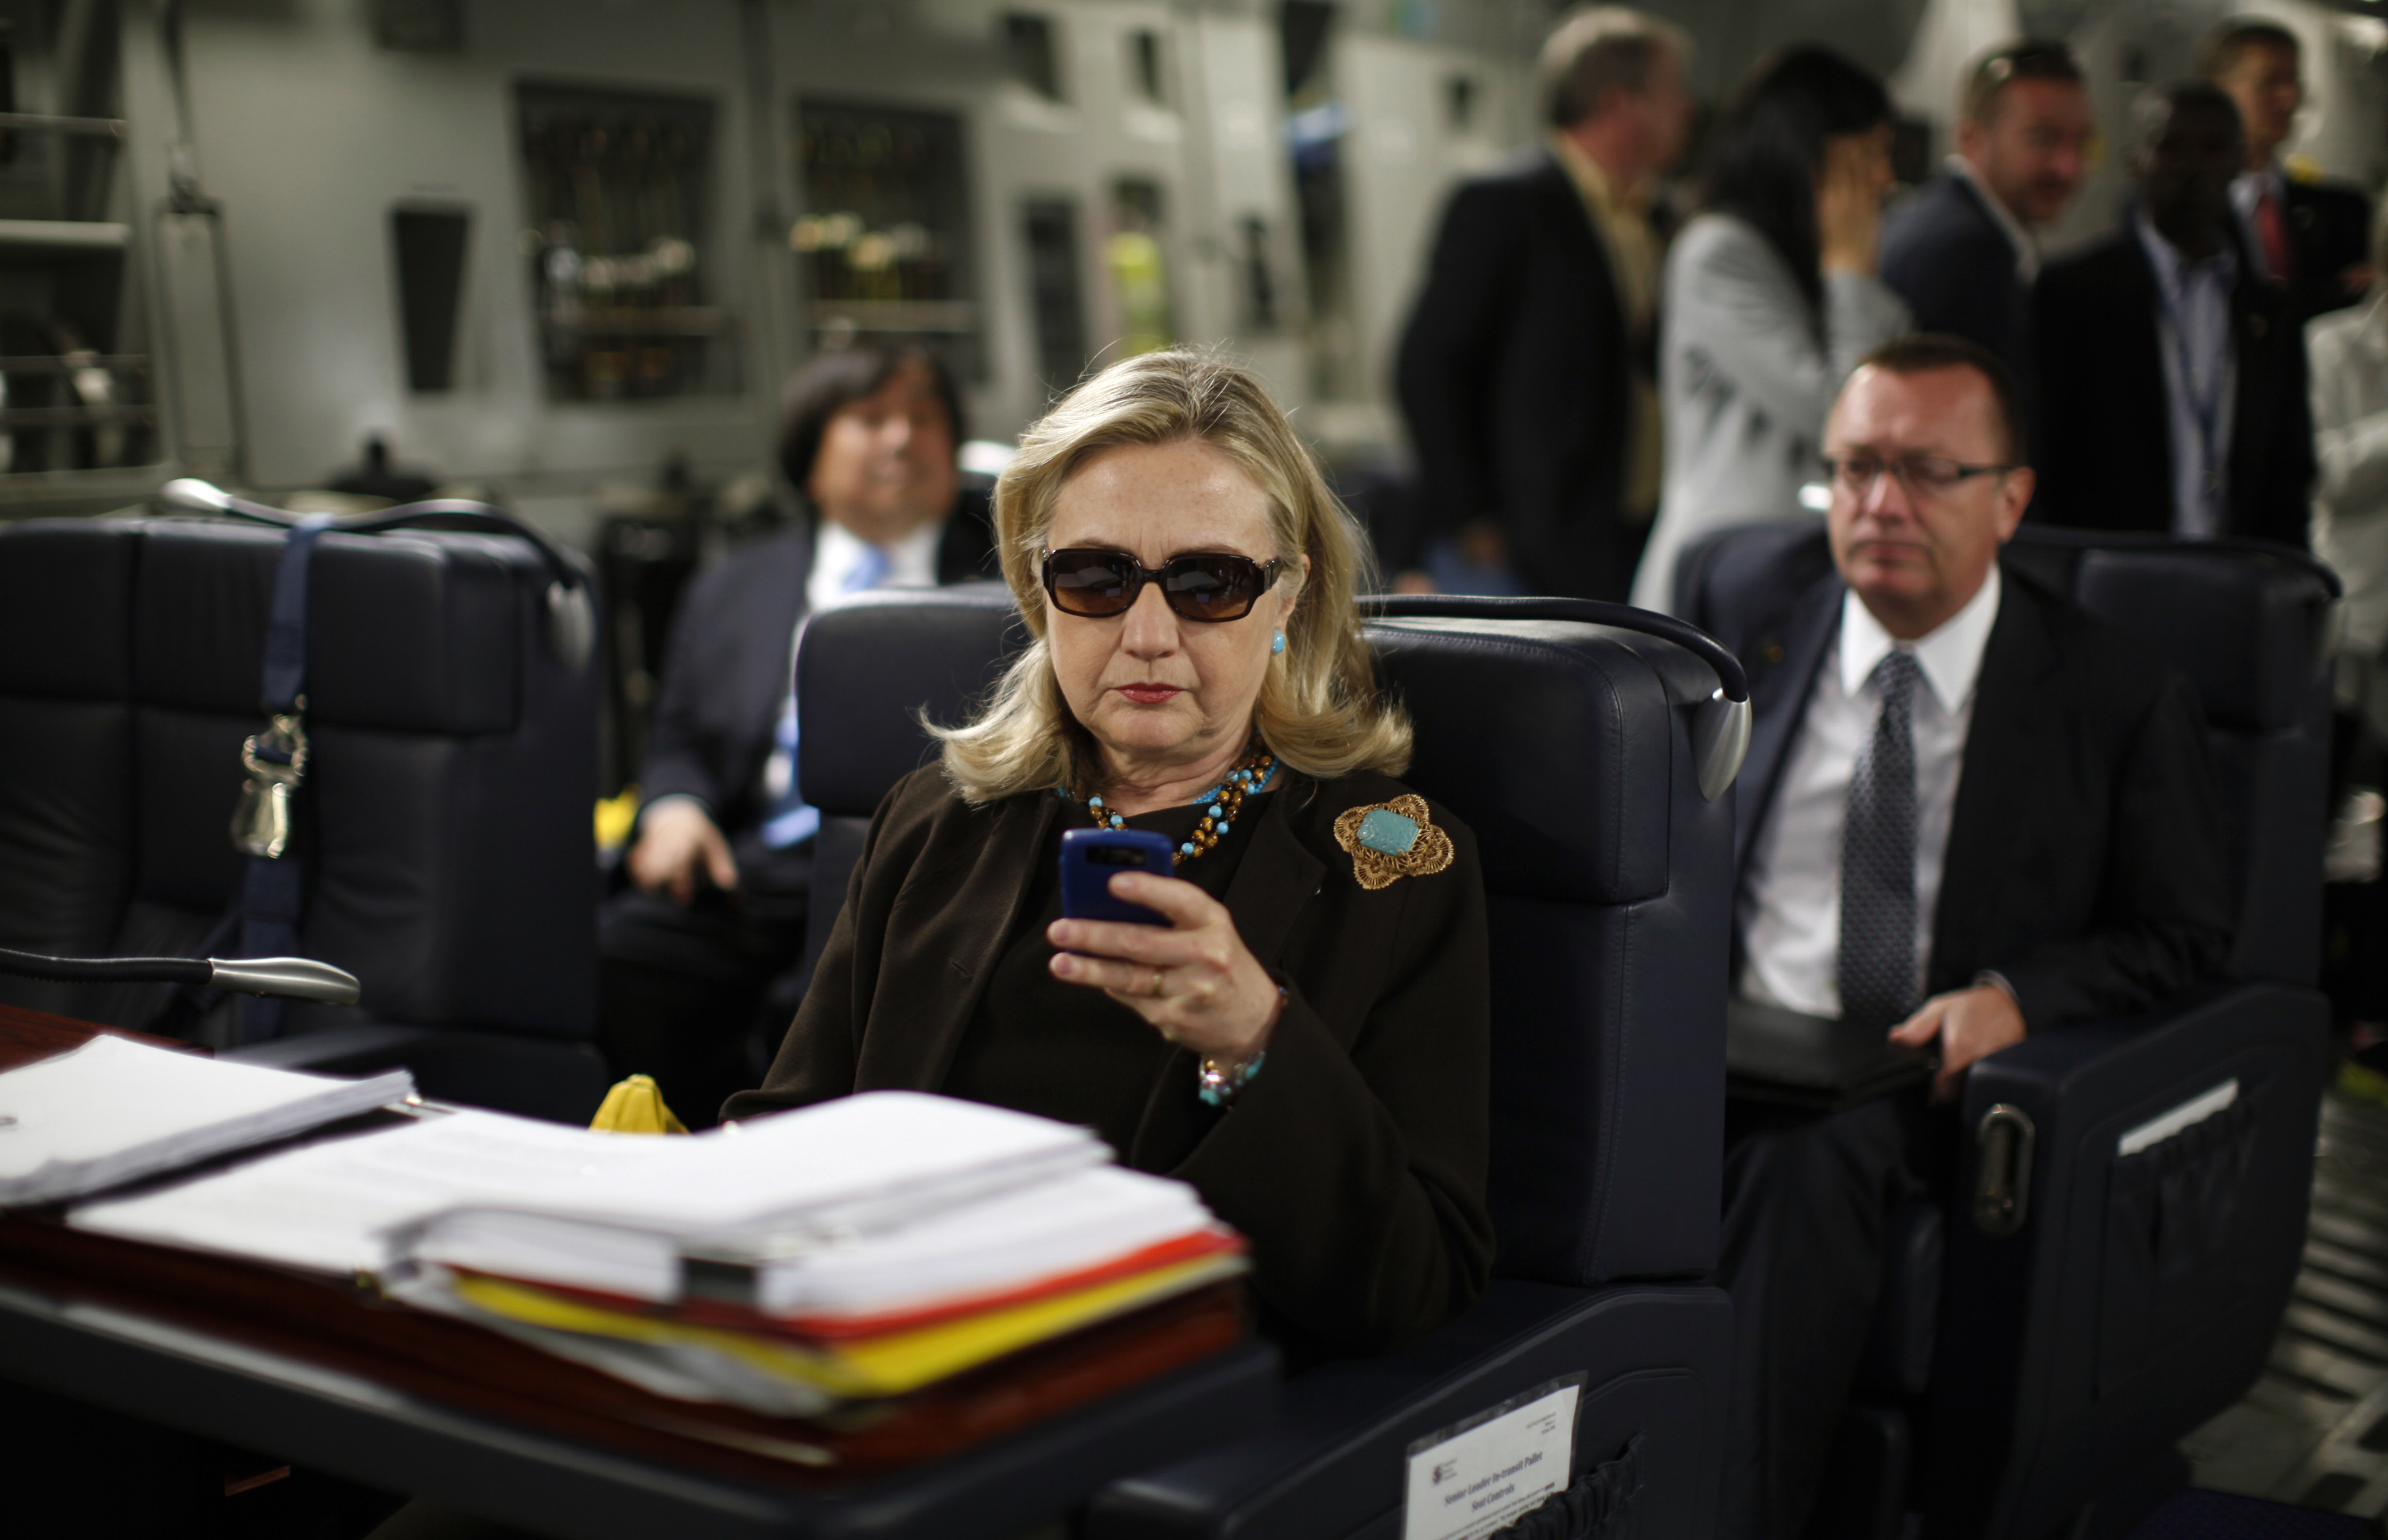 State Dept. Still Can't Find Crucial 'Separation Form' by Clinton